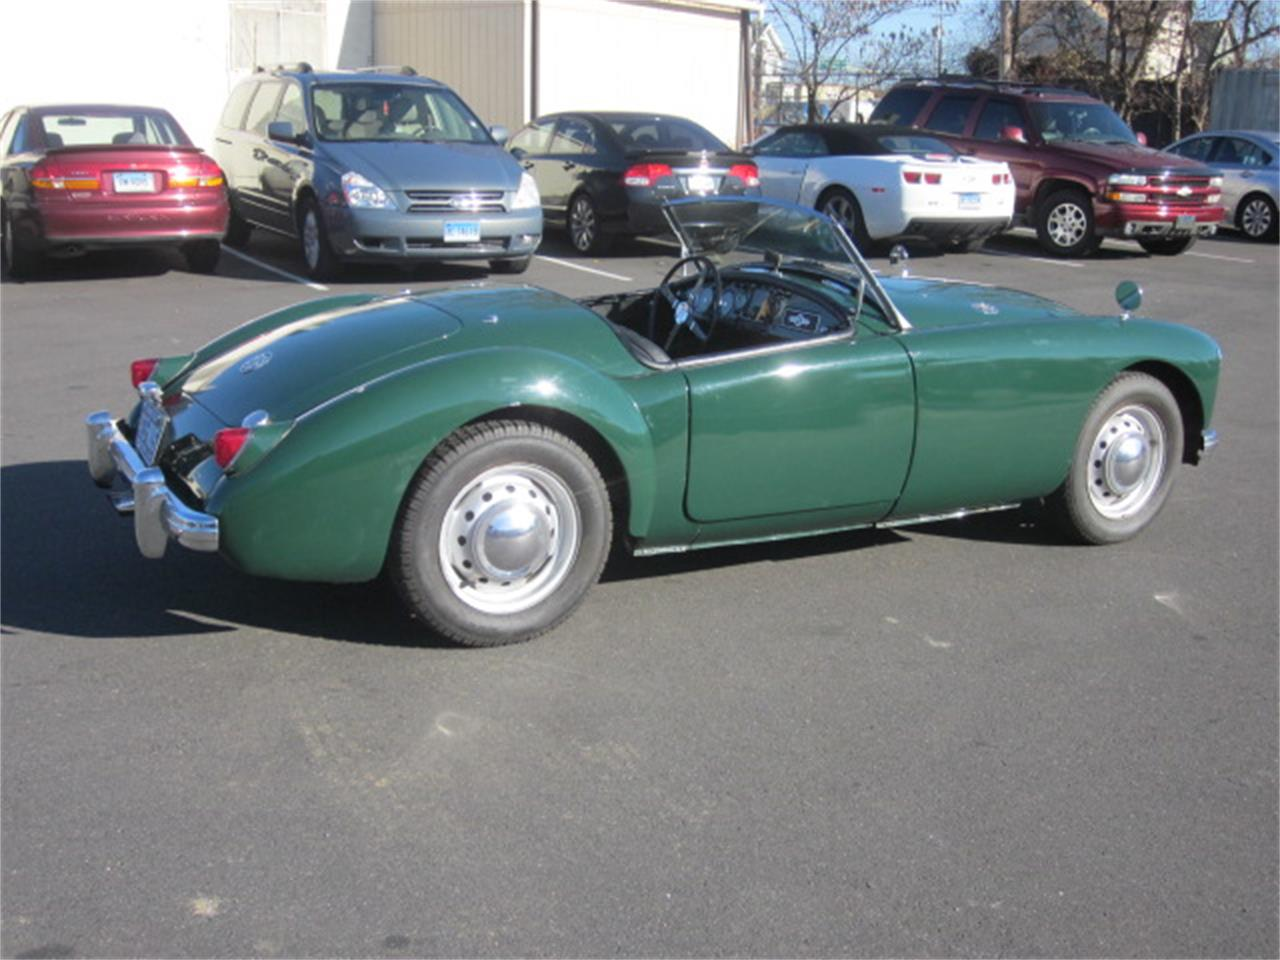 Large Picture of '58 MG MGA 1500 located in Connecticut - $23,500.00 Offered by The New England Classic Car Co. - JV9R